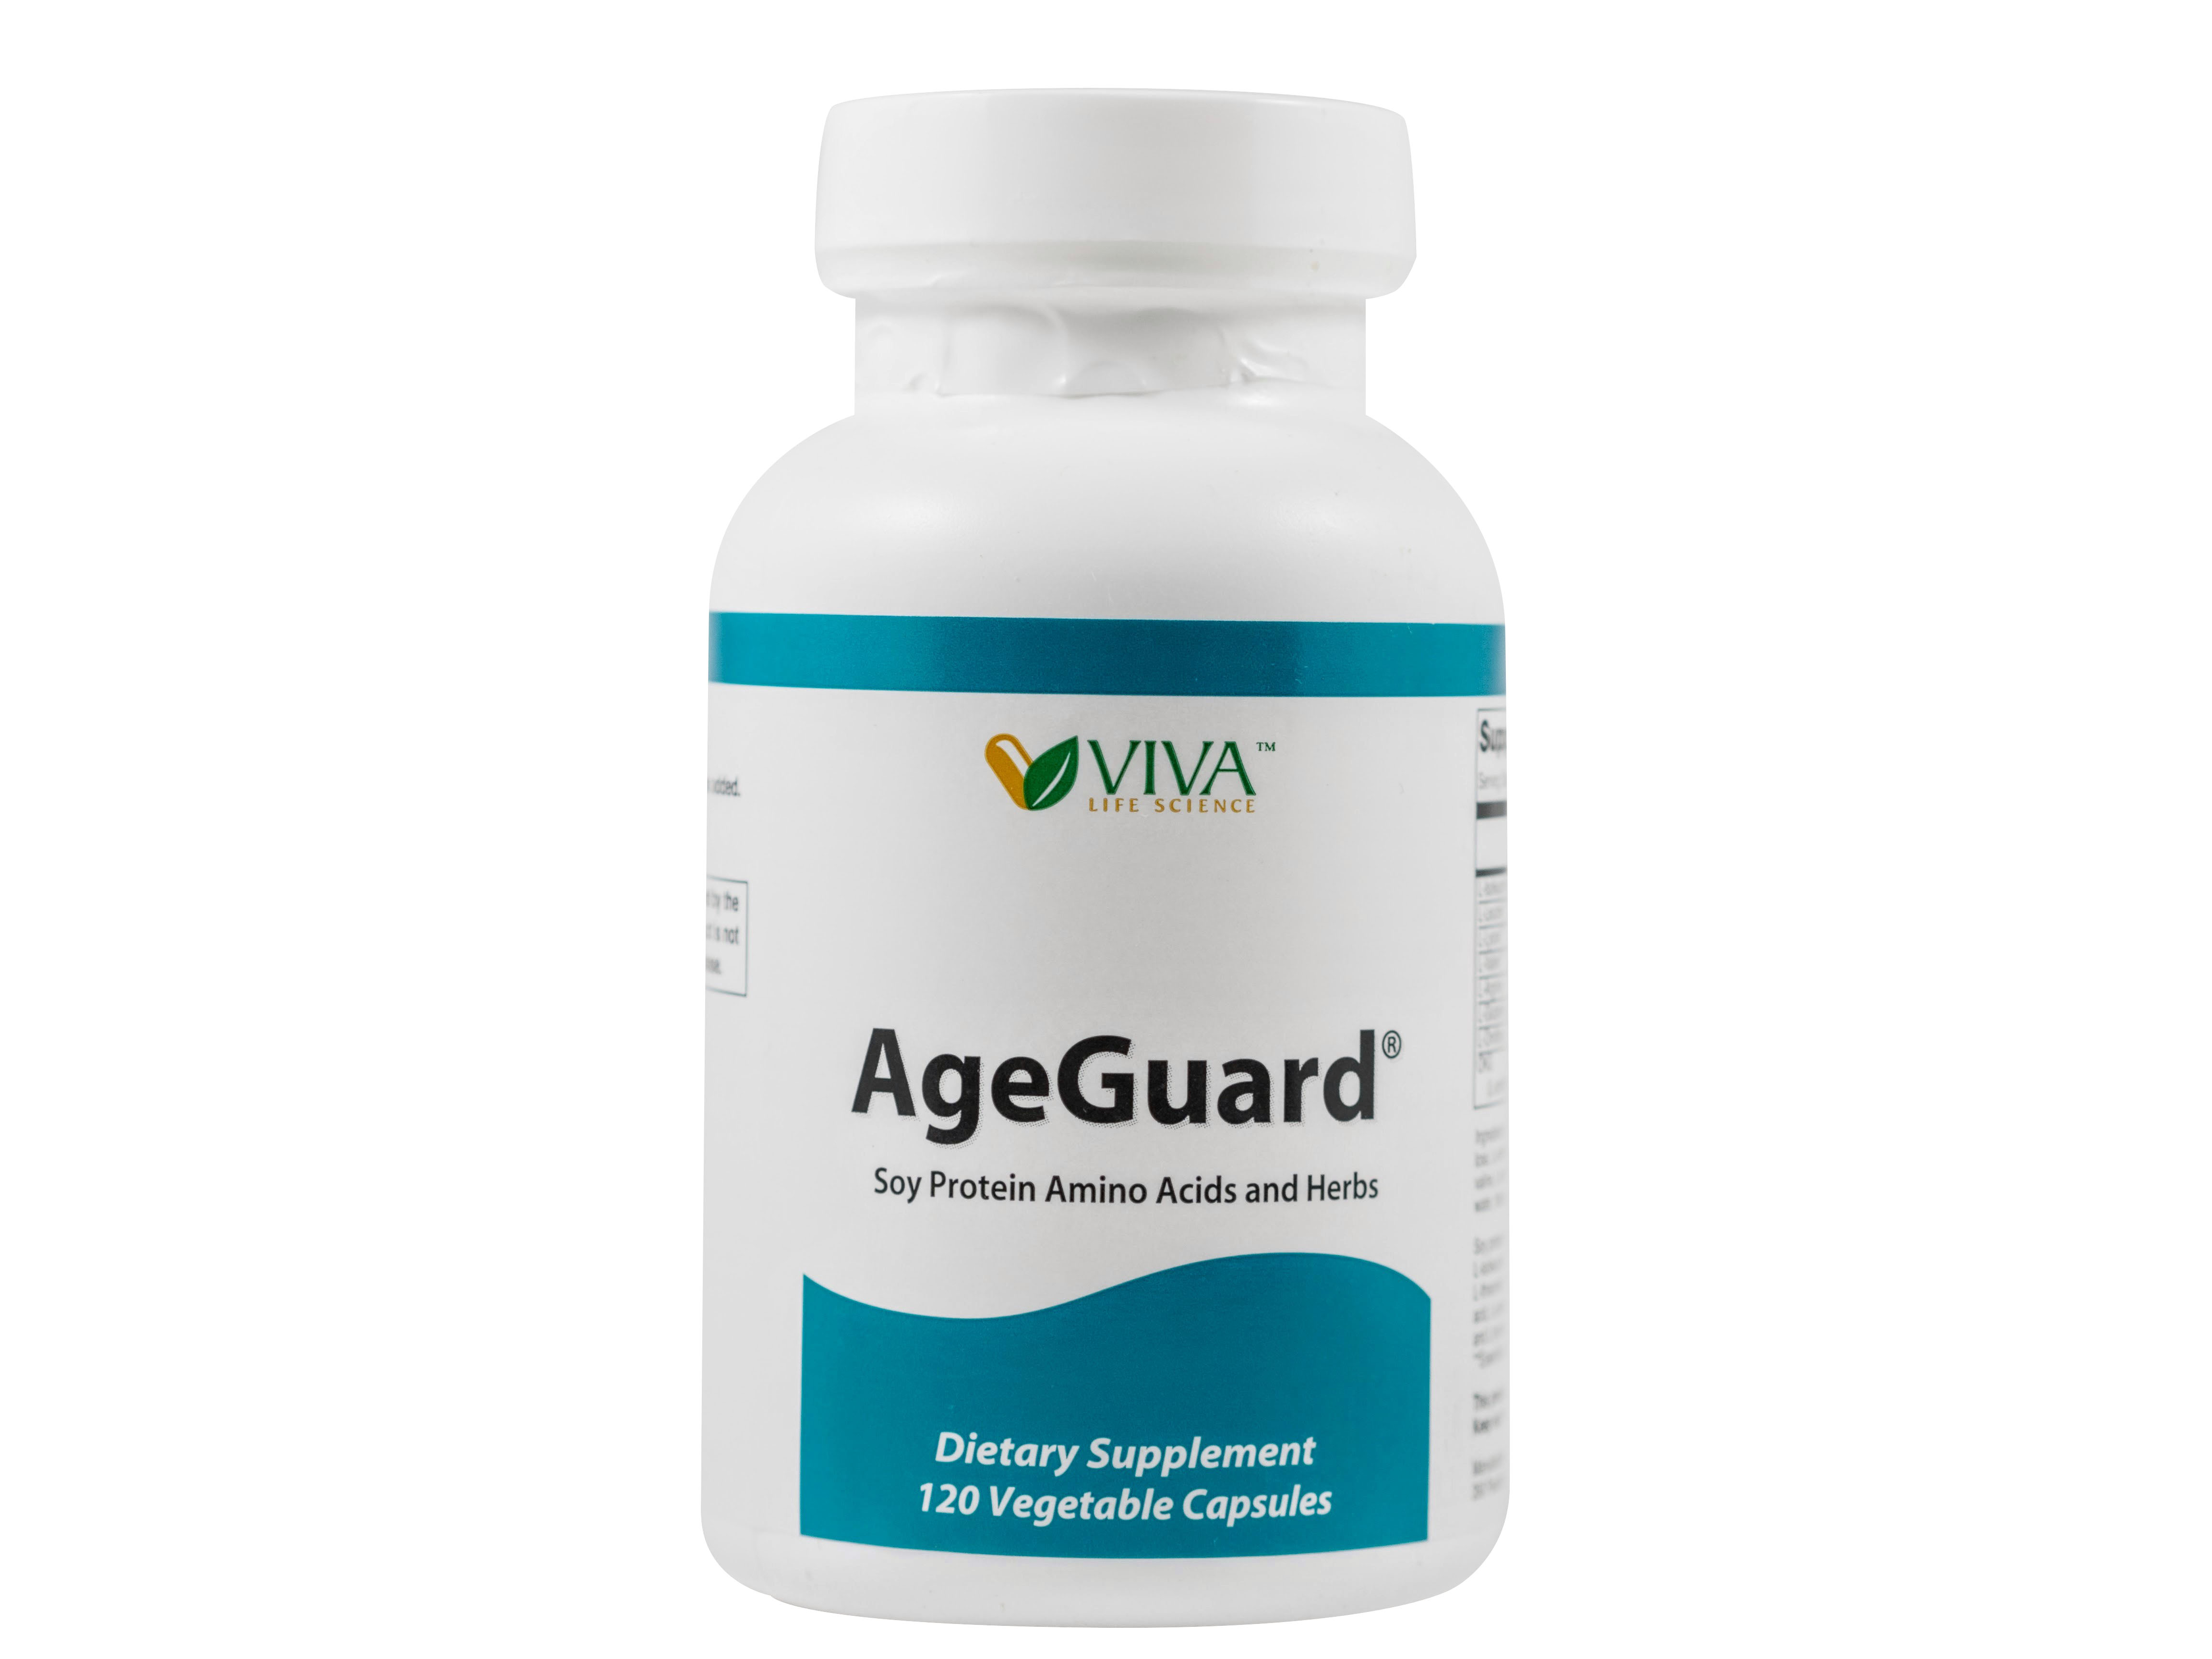 AgeGuard - Strengthens muscles, rejuvenates organs, and increases energy